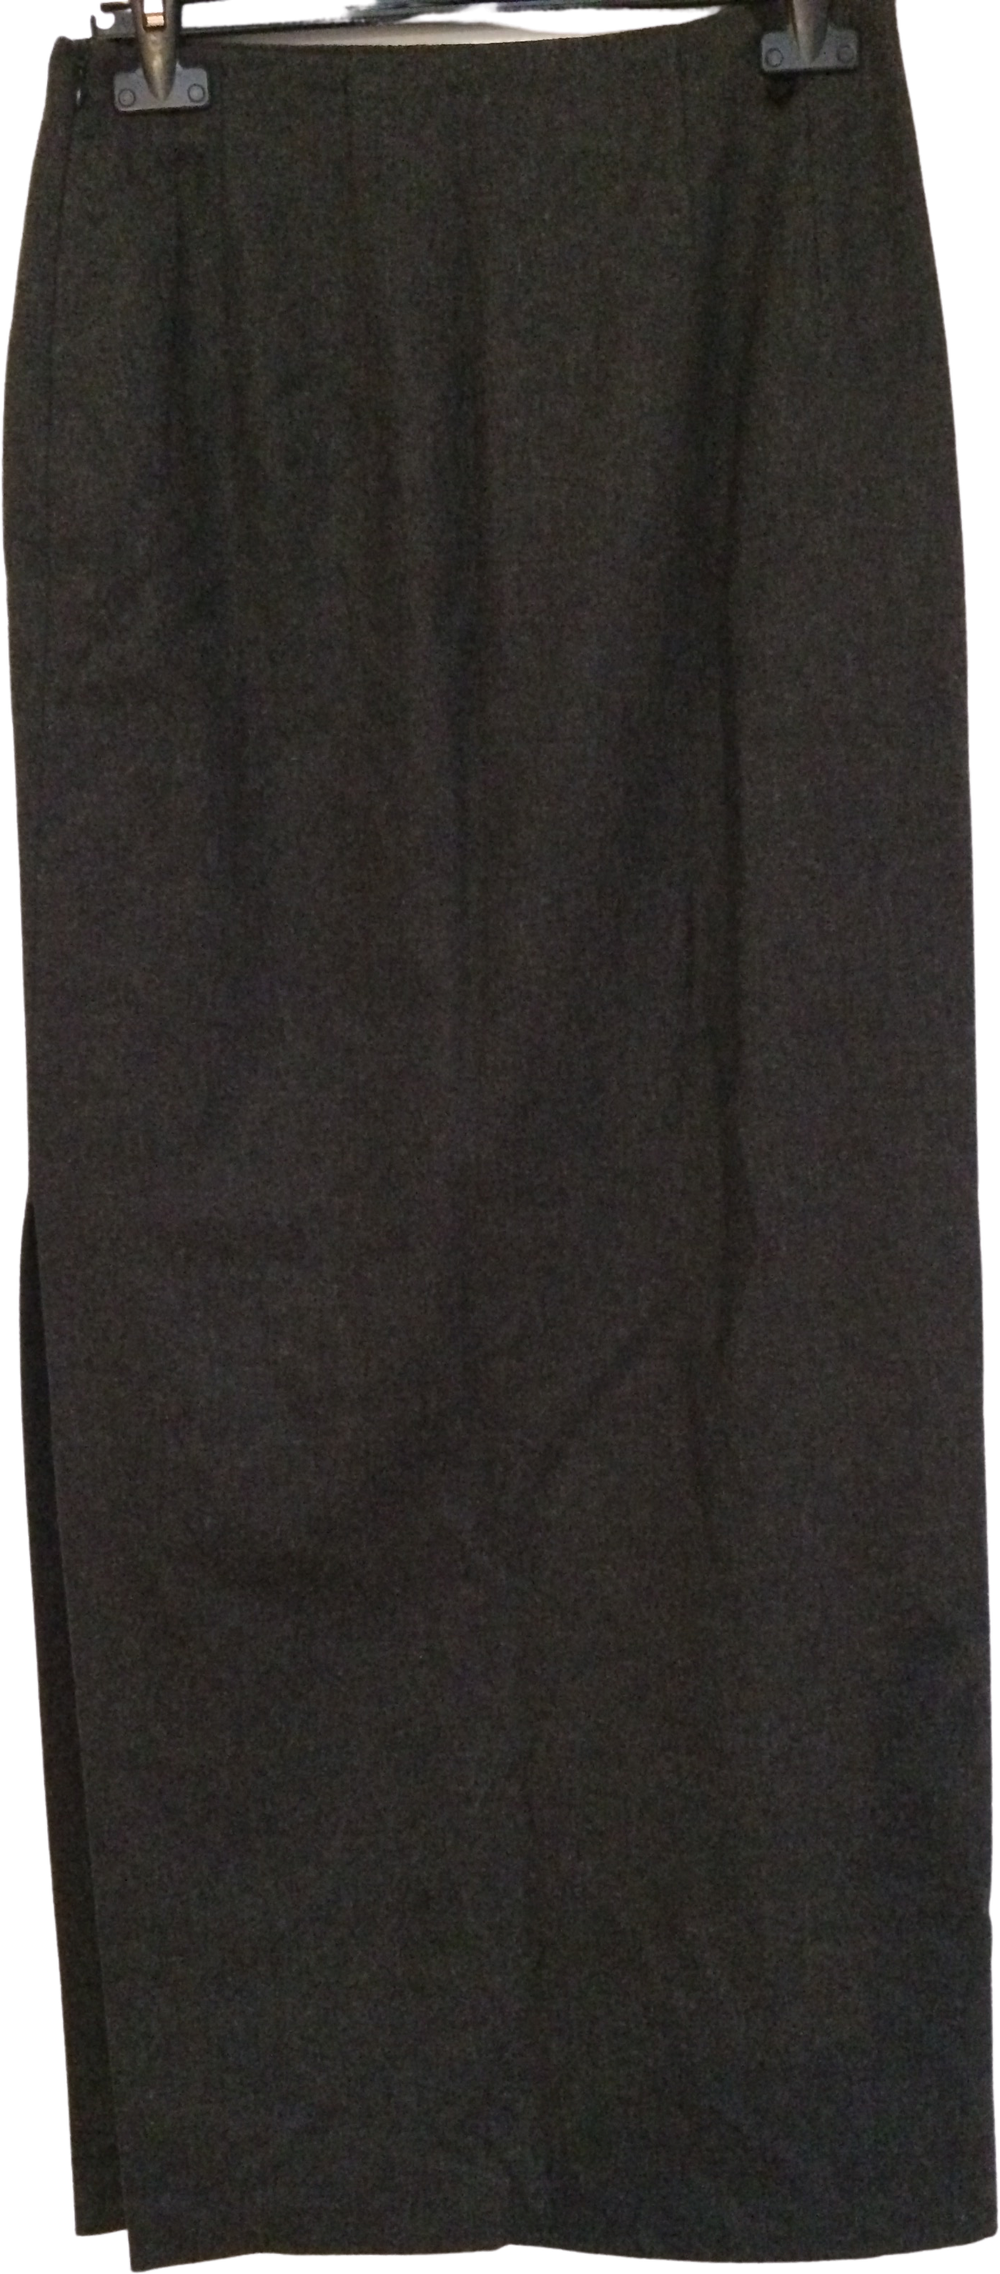 Black Wool / Acrylic Mix Vintage Maxi Skirt Slit Panel